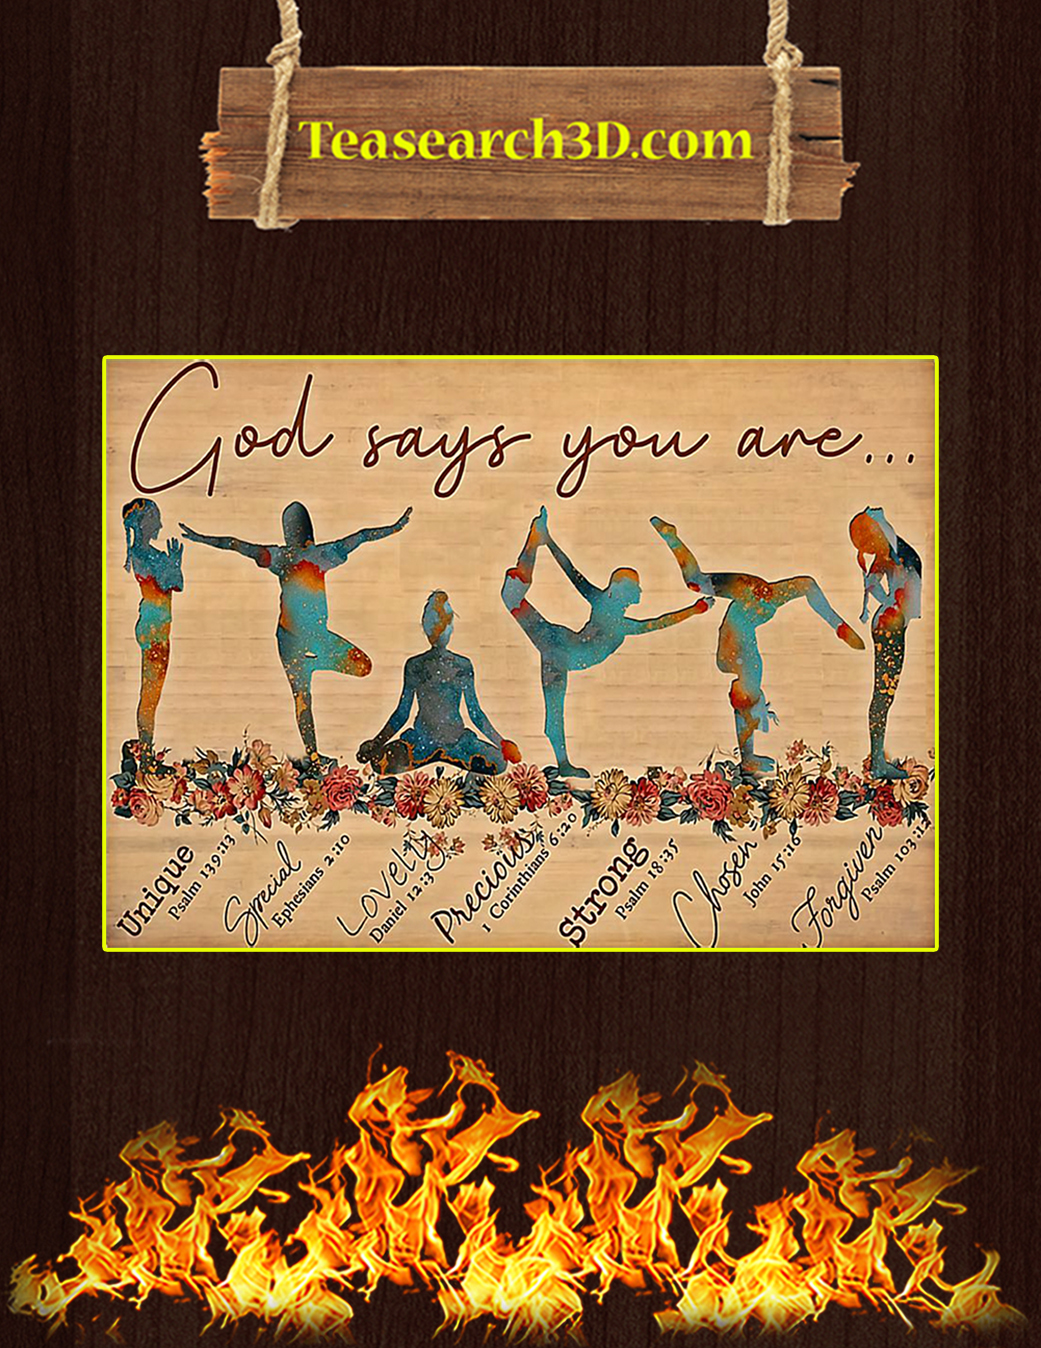 Yoga god says you are poster A1